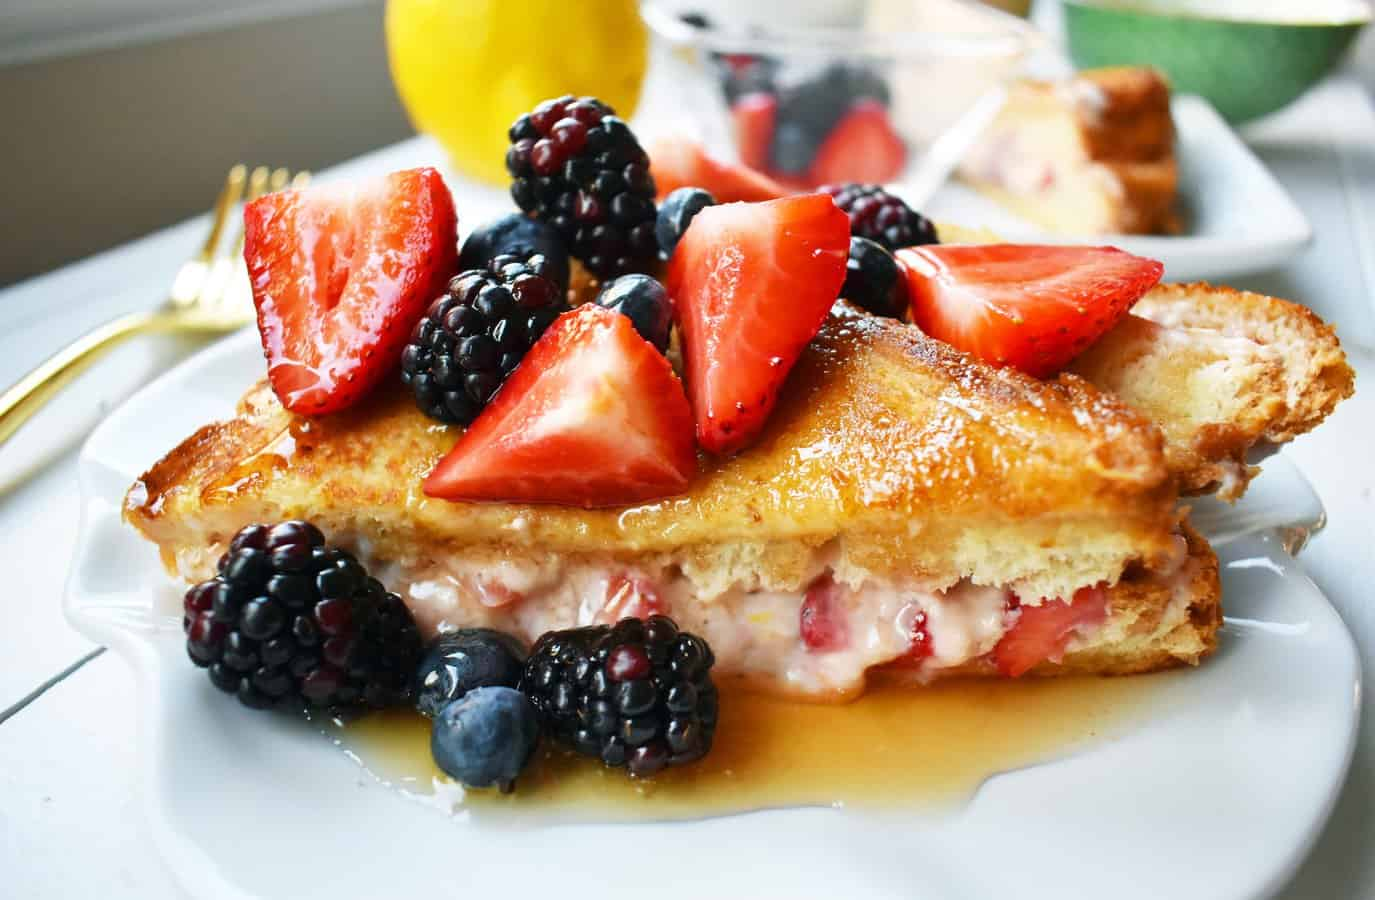 A breakfast favorite! Sweetened fresh strawberry cream cheese stuffed between thick slices of bread and dipped into a rich custard batter and cooked in a buttery skillet until golden brown. Topped with fresh berries and homemade whipped cream. A showstopping breakfast dish!